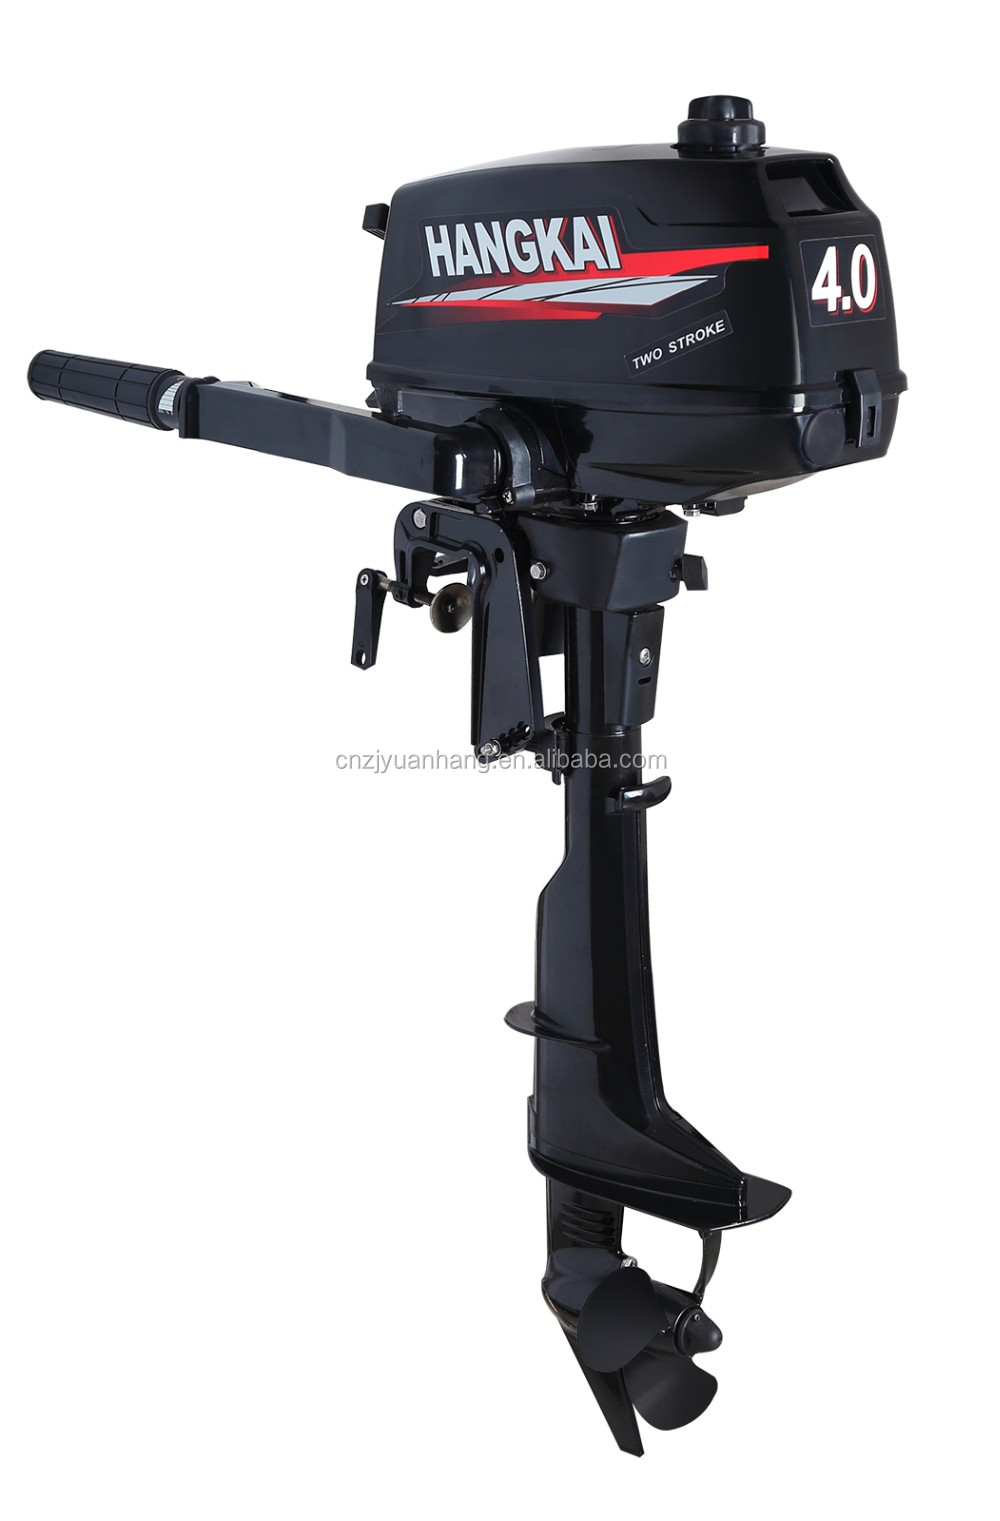 wholesale price 4hp outboard motor with tiller control